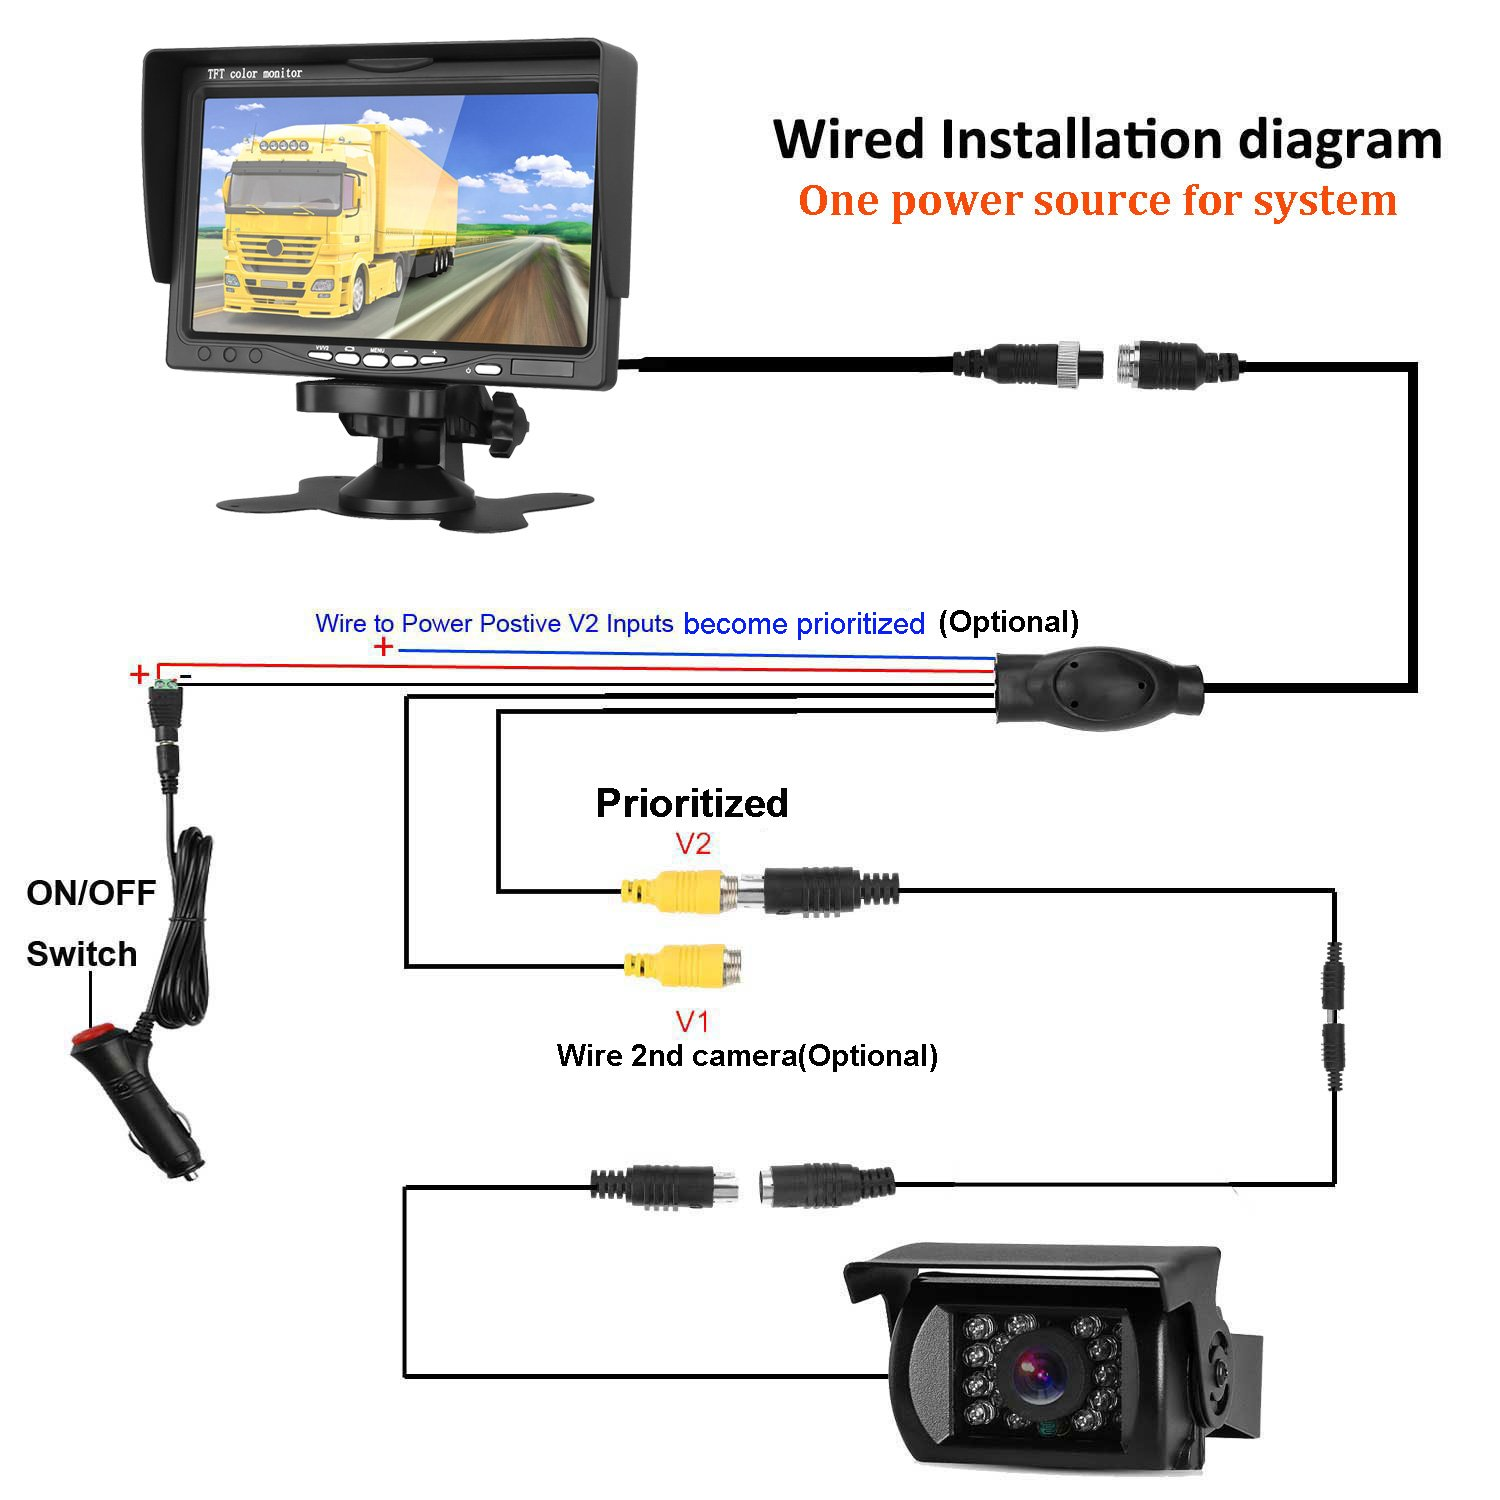 iStrong Backup Camera and 7 Monitor Kit System for Car//Truck//Trailer//Camper Waterproof Wired Rear View Full-time View Options 4350450713